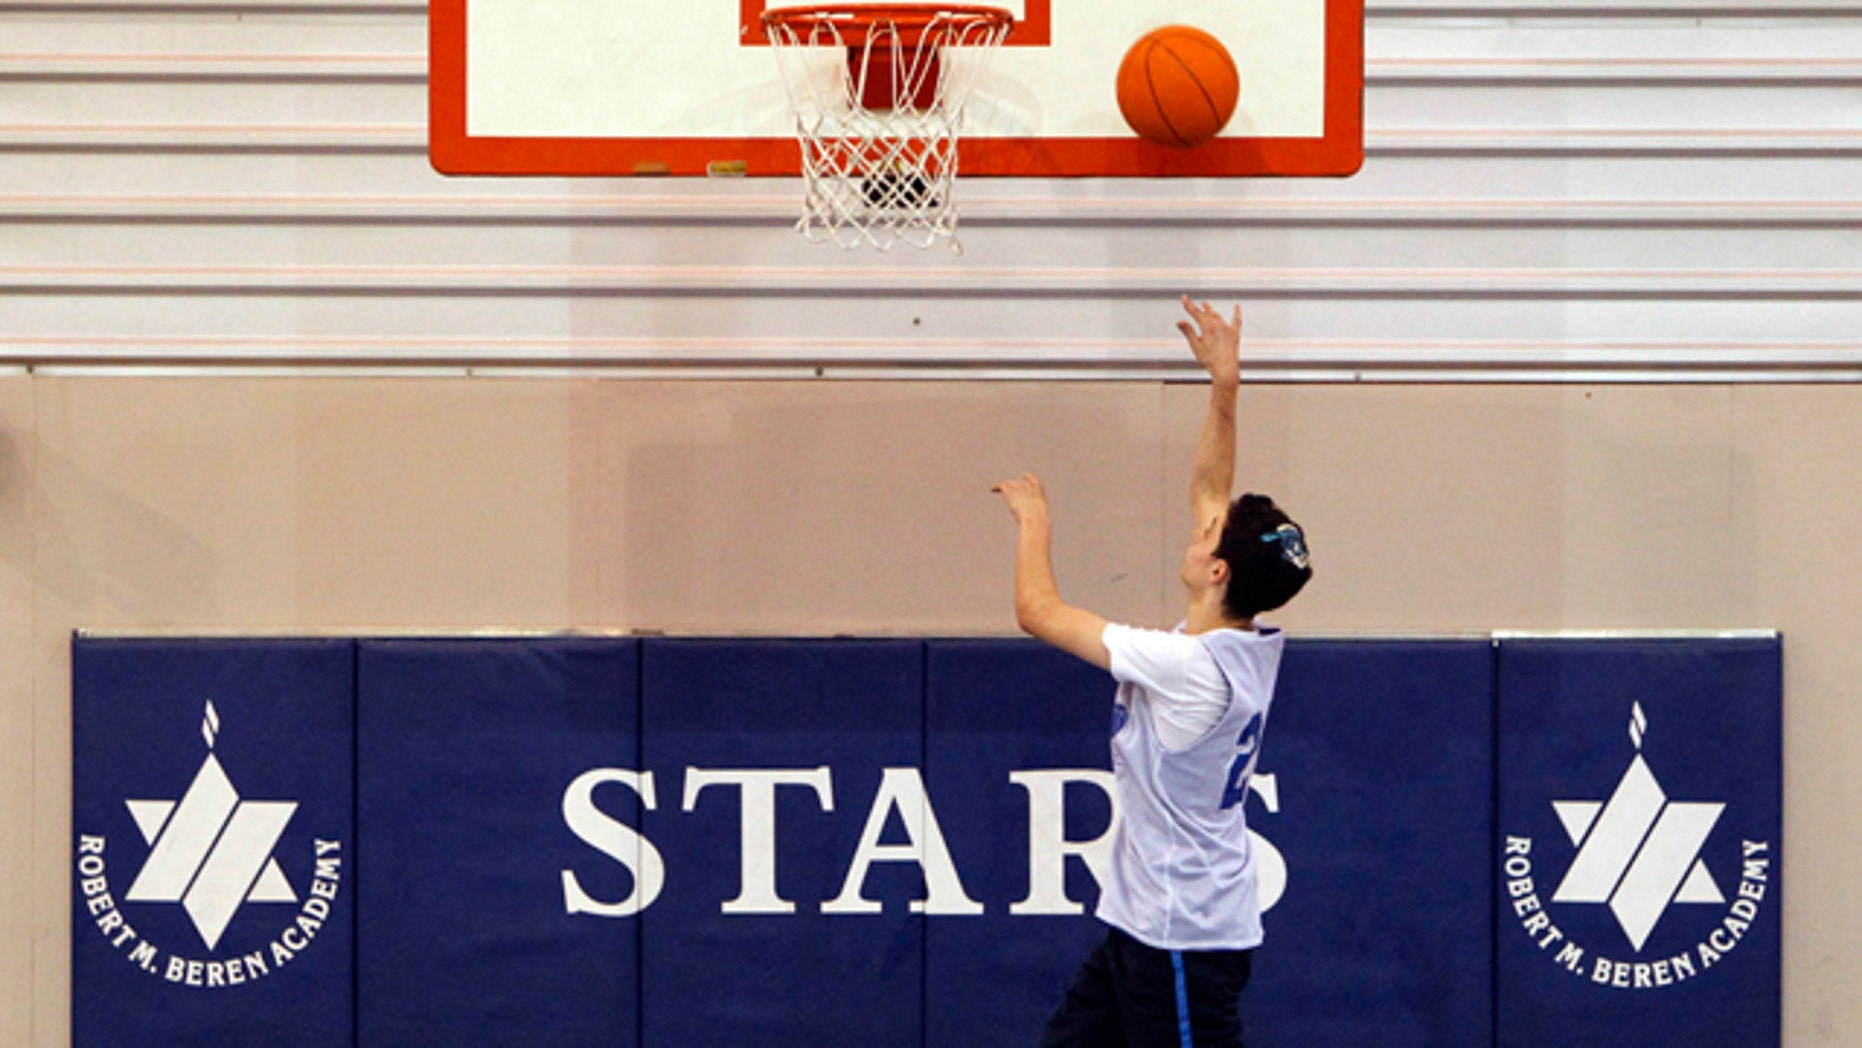 Feb. 28, 2012: Roni Buchine, 14, practices with the Beren Academy boys' basketball team in Houston.